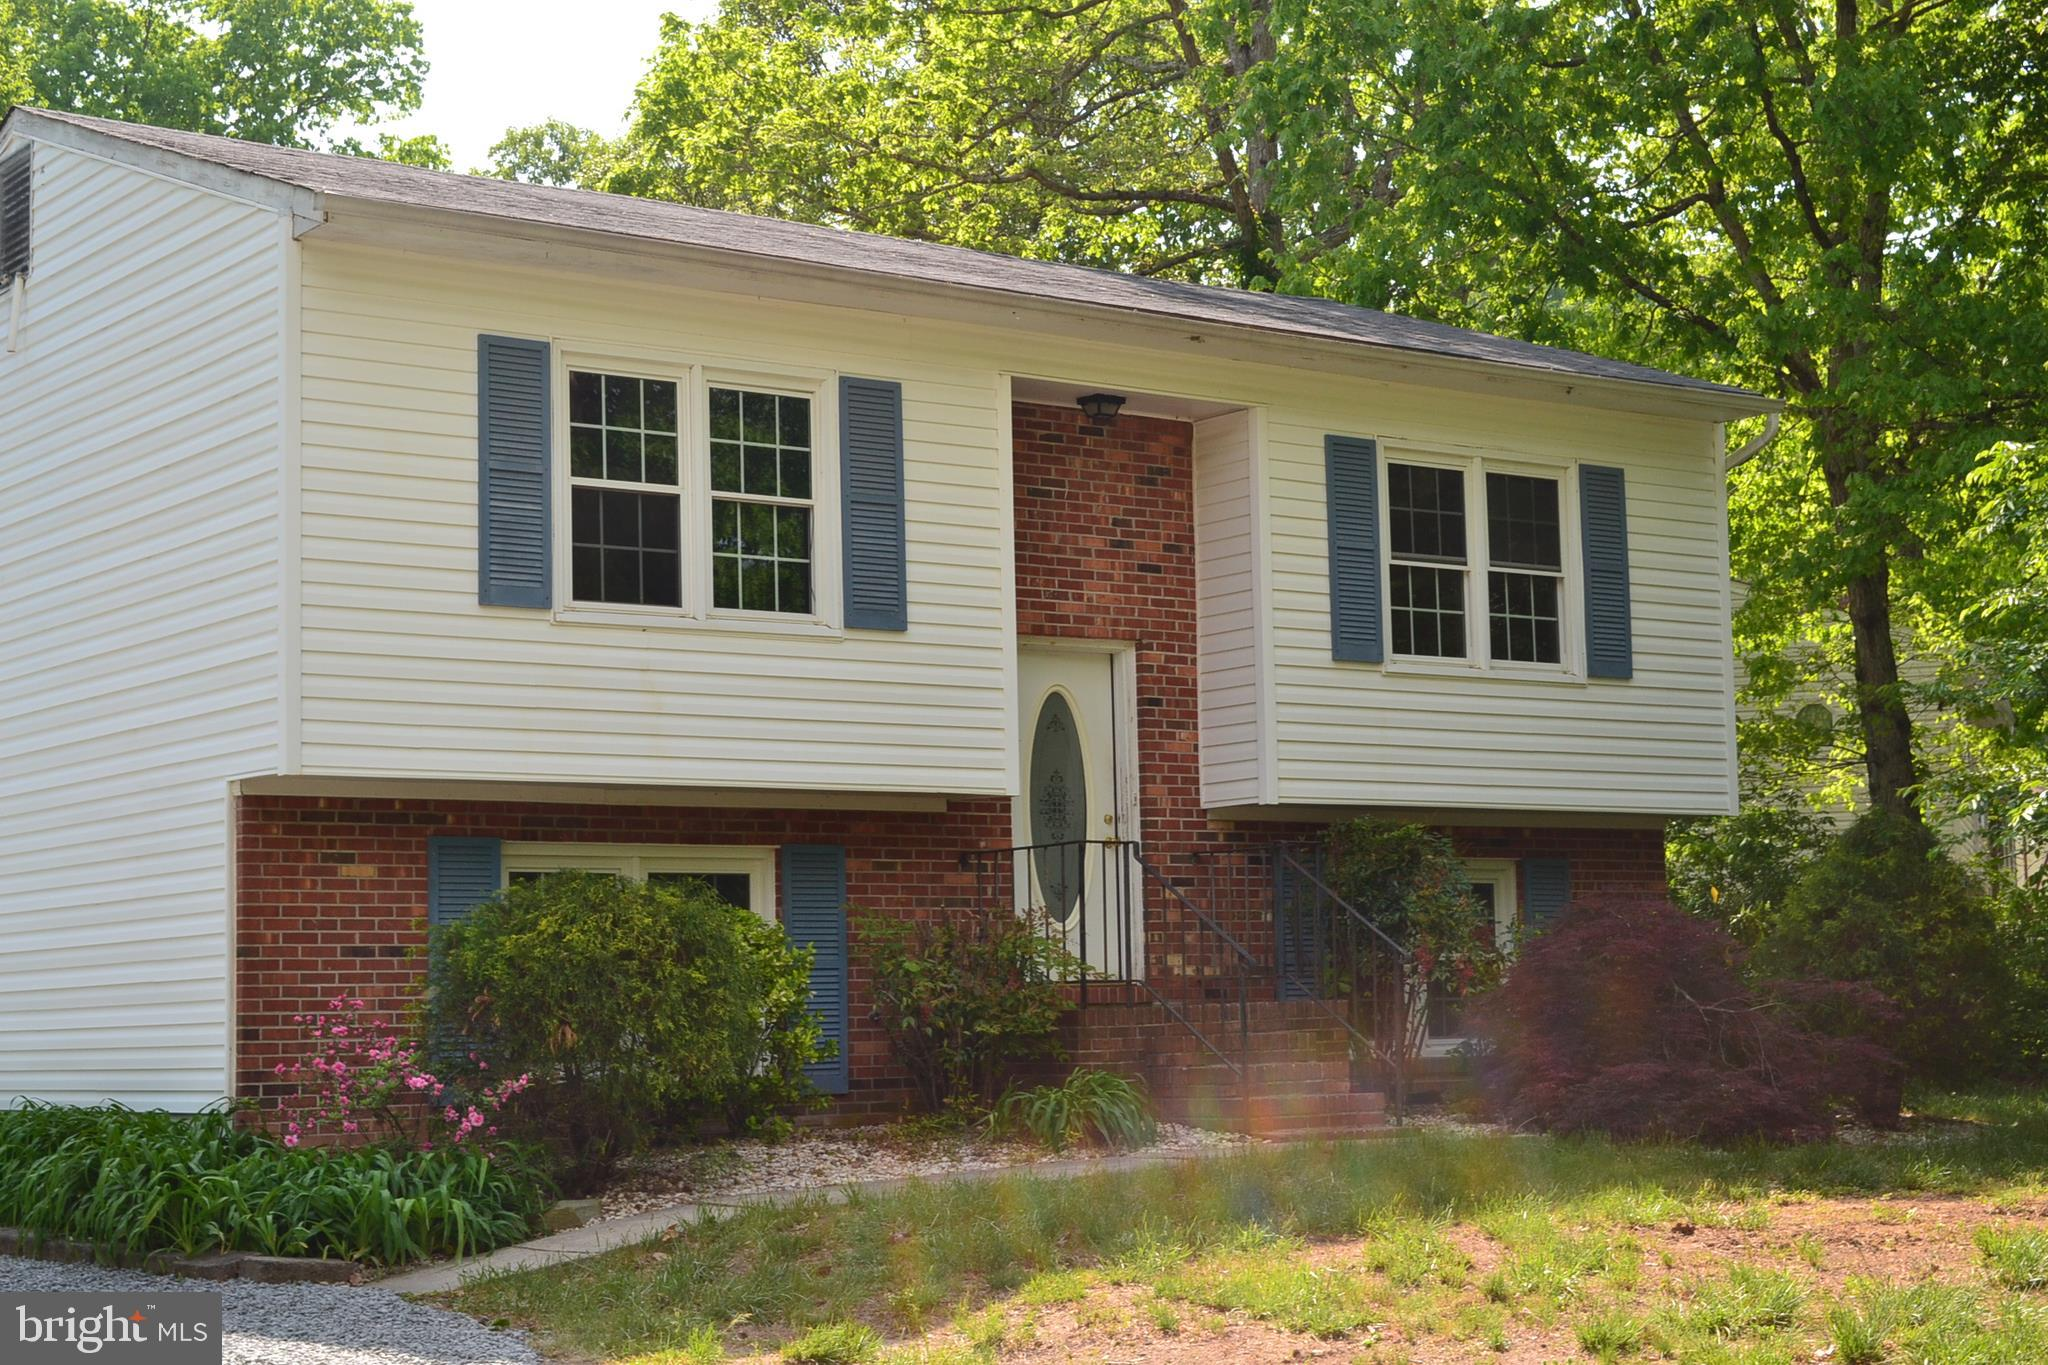 UNBELIEVABLE VALUE and over 1,700 square feet of living space!!  Freshly painted and move in ready!  Updated laminate flooring throughout the home.  Galley kitchen with smooth top stove and microwave, separate dining space off kitchen with a slider to wood deck off back of the house.  Open living room and dining area. Spacious family room on lower level with recessed lighting.  Fully finished lower level with walkout and full bath.  Situated on a corner lot with large driveway with lots of parking space and shed.